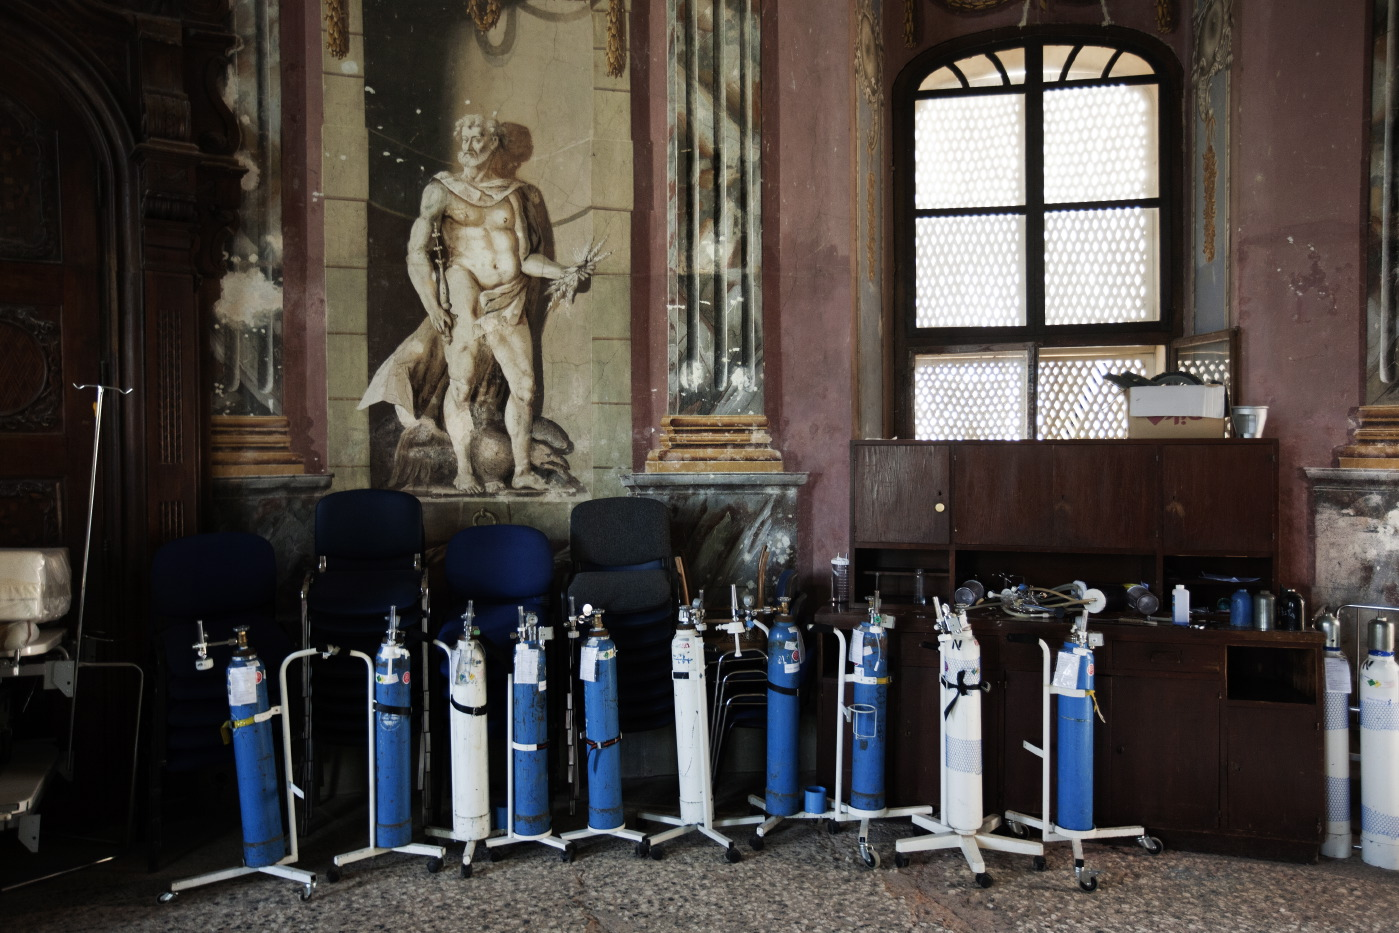 Oxygen's cylinders in a depicted room of the ex-Castle. Gornja Bistra, Croatia 2009. © Matteo Bastianelli